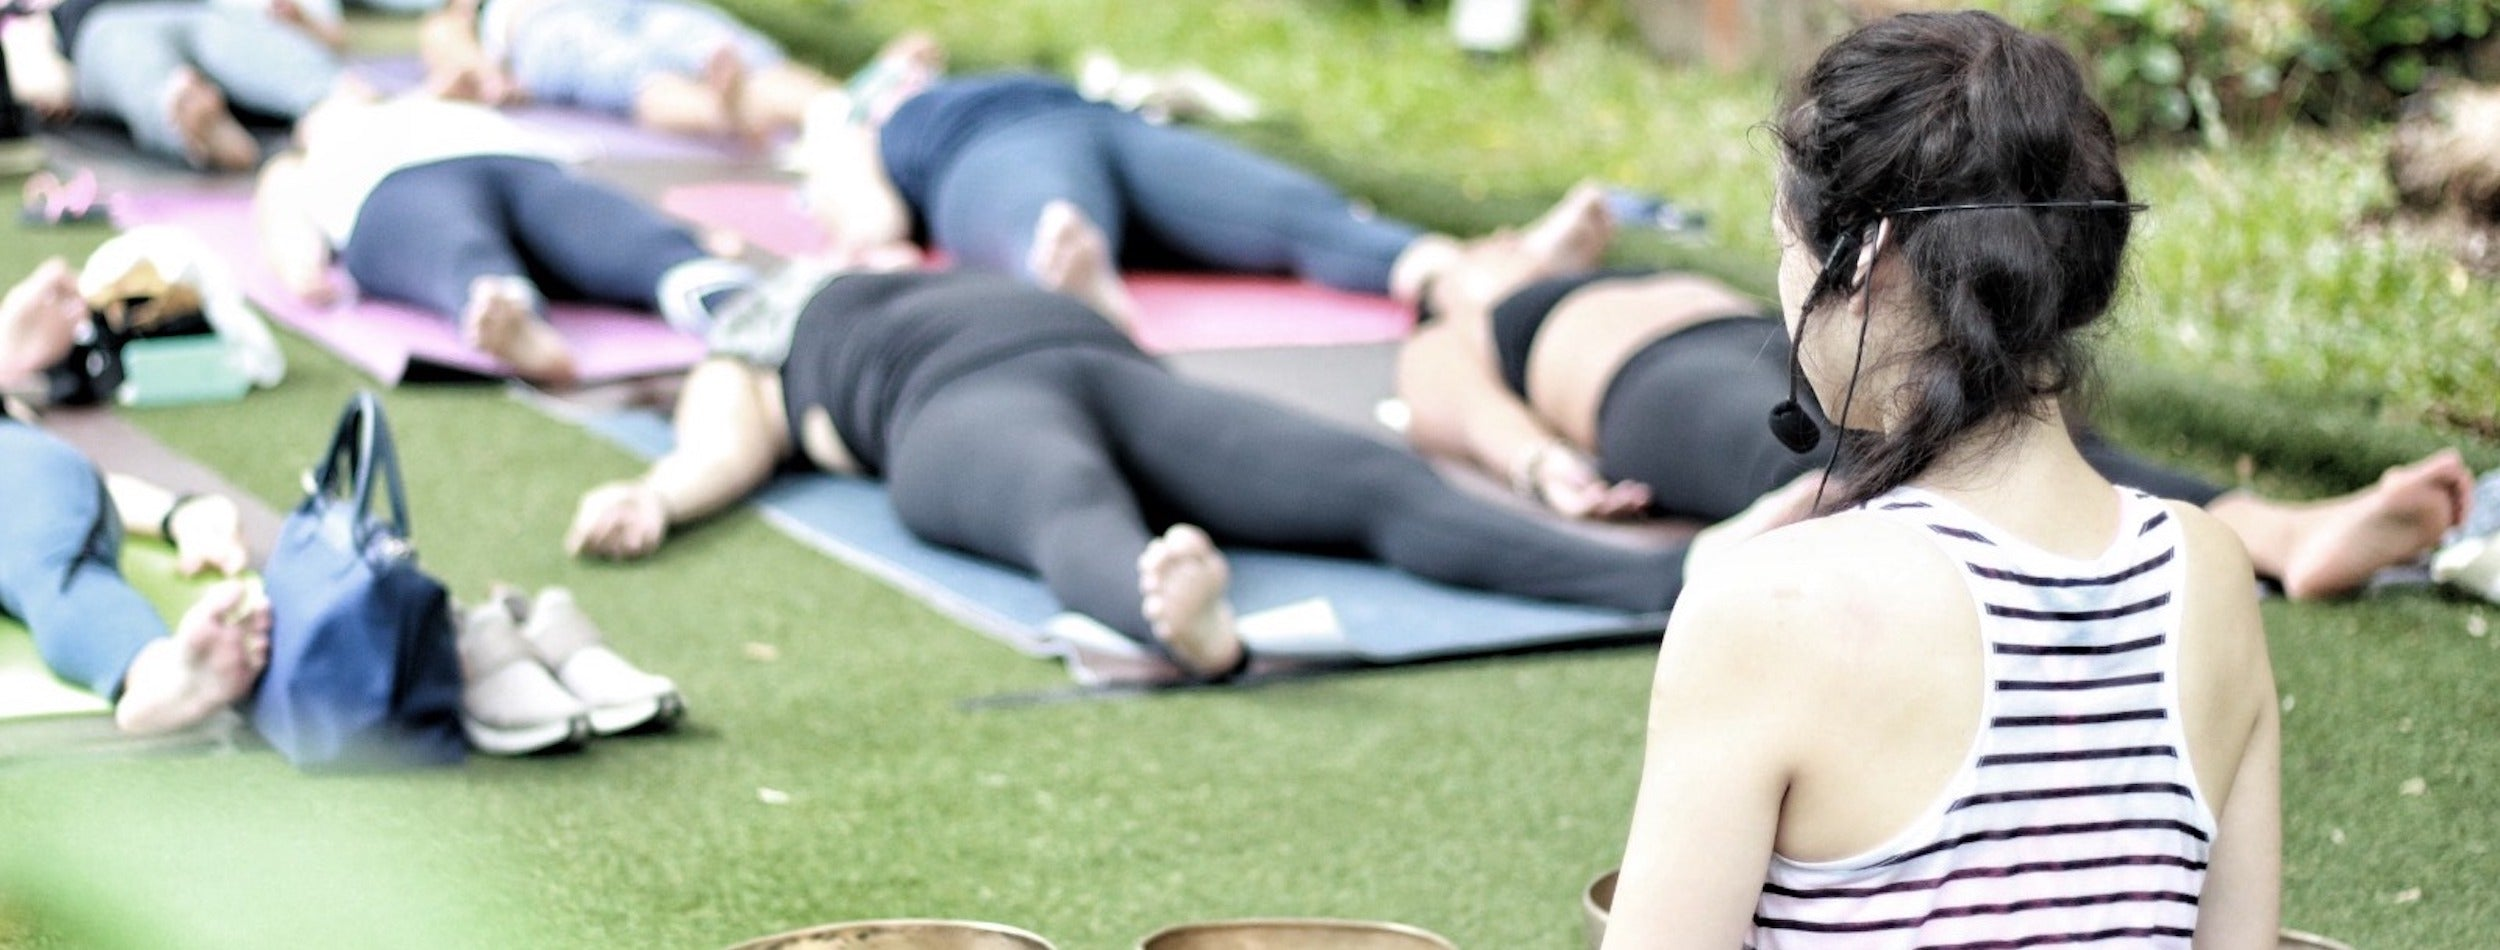 Woman with microphone playing music to a crowd of people laying down on yoga mats